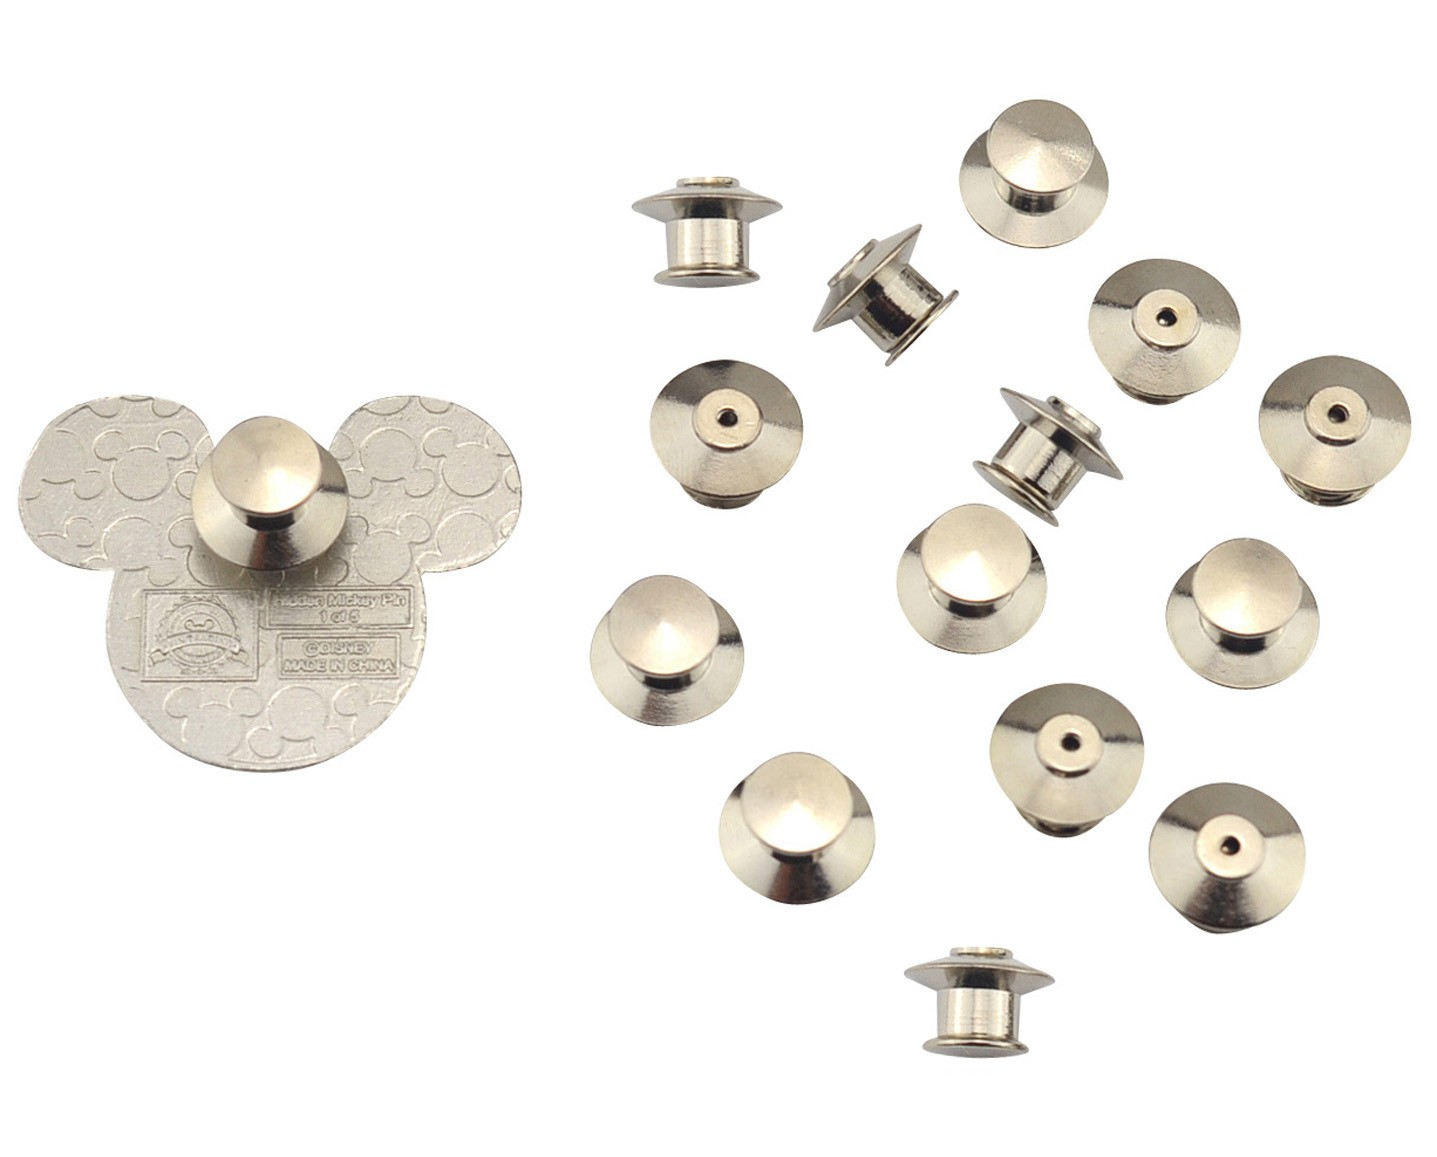 Locking Lapel Pin Backs-Solution to Keep Your Pins From